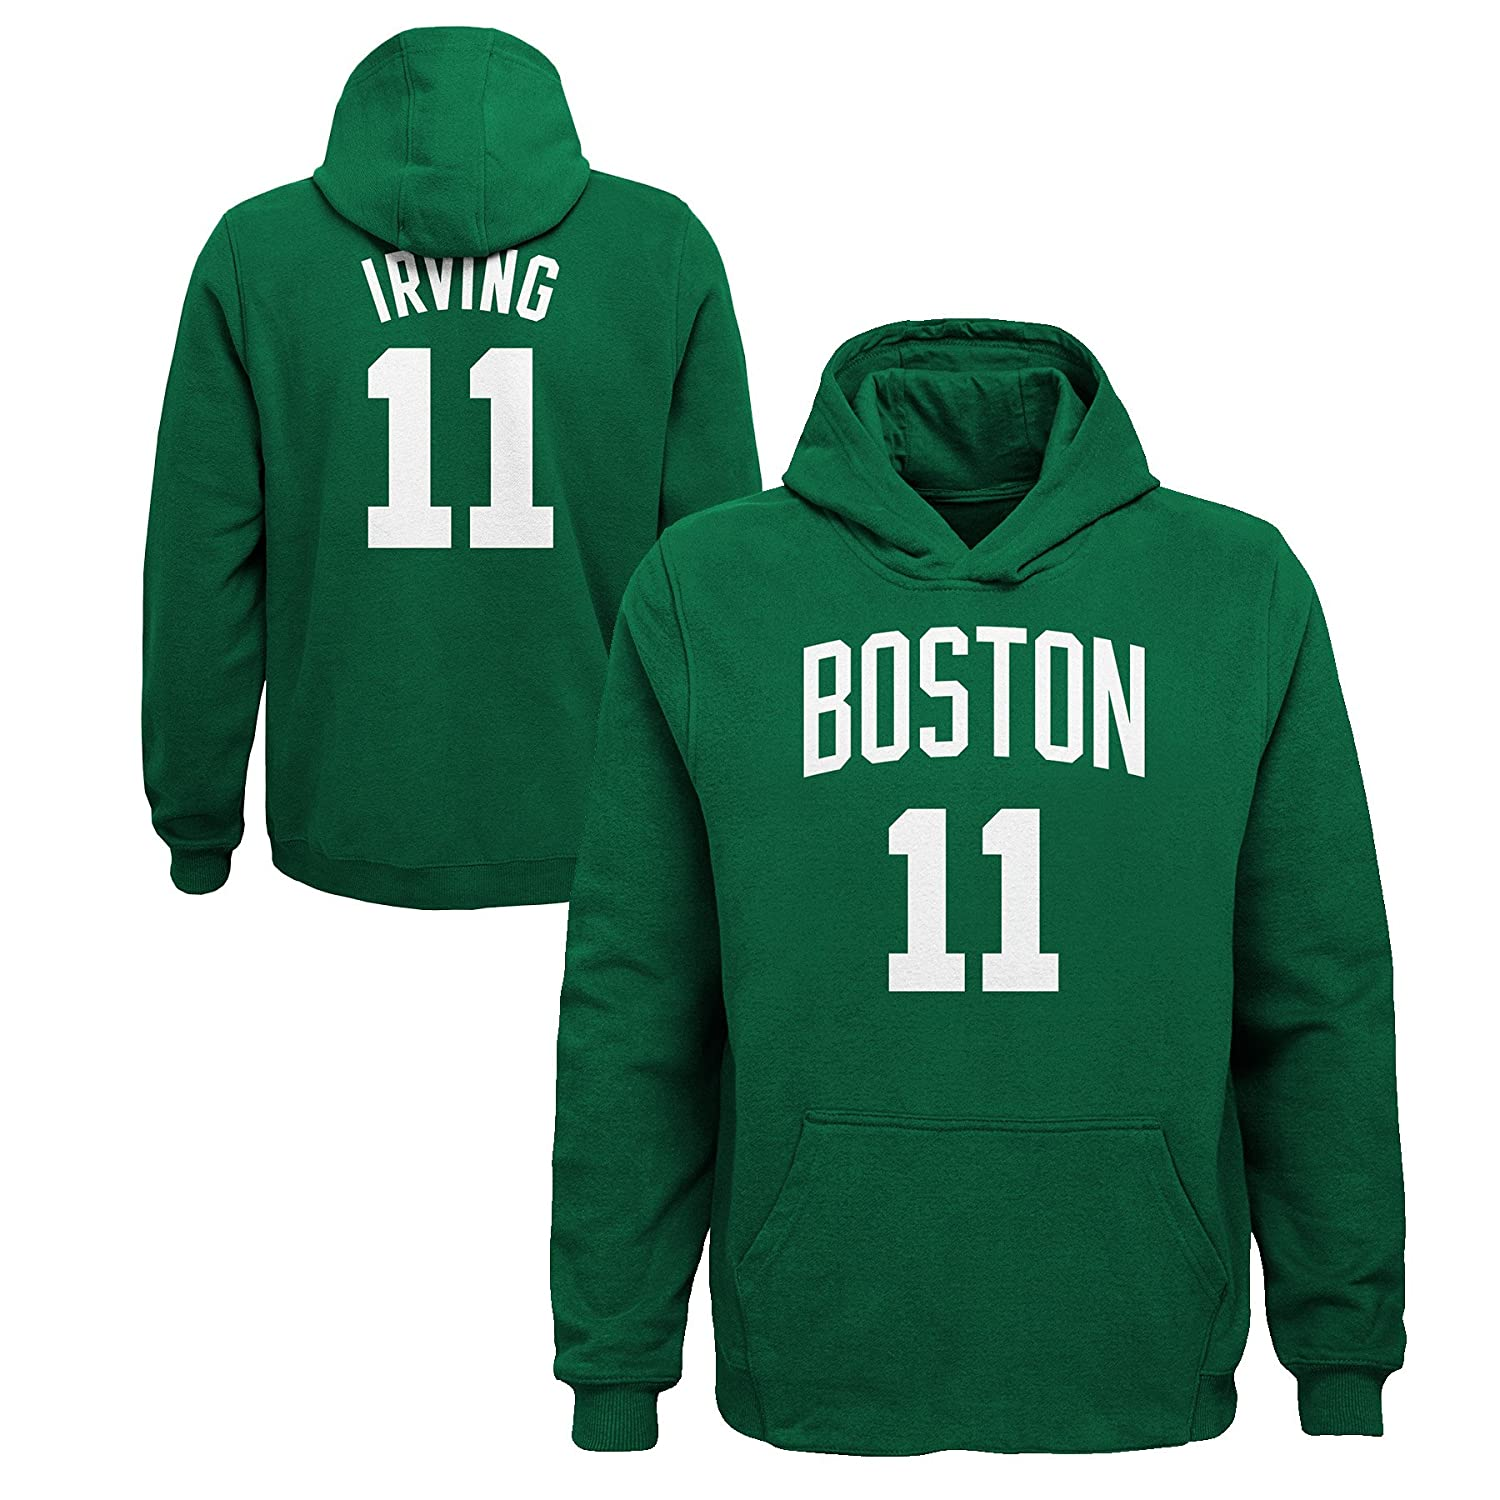 pretty nice 78b29 04063 Outerstuff NBA Kyrie Irving #11 Boston Celtics L/S Name Number Youth Green  Sweatshirt Officially Licensed